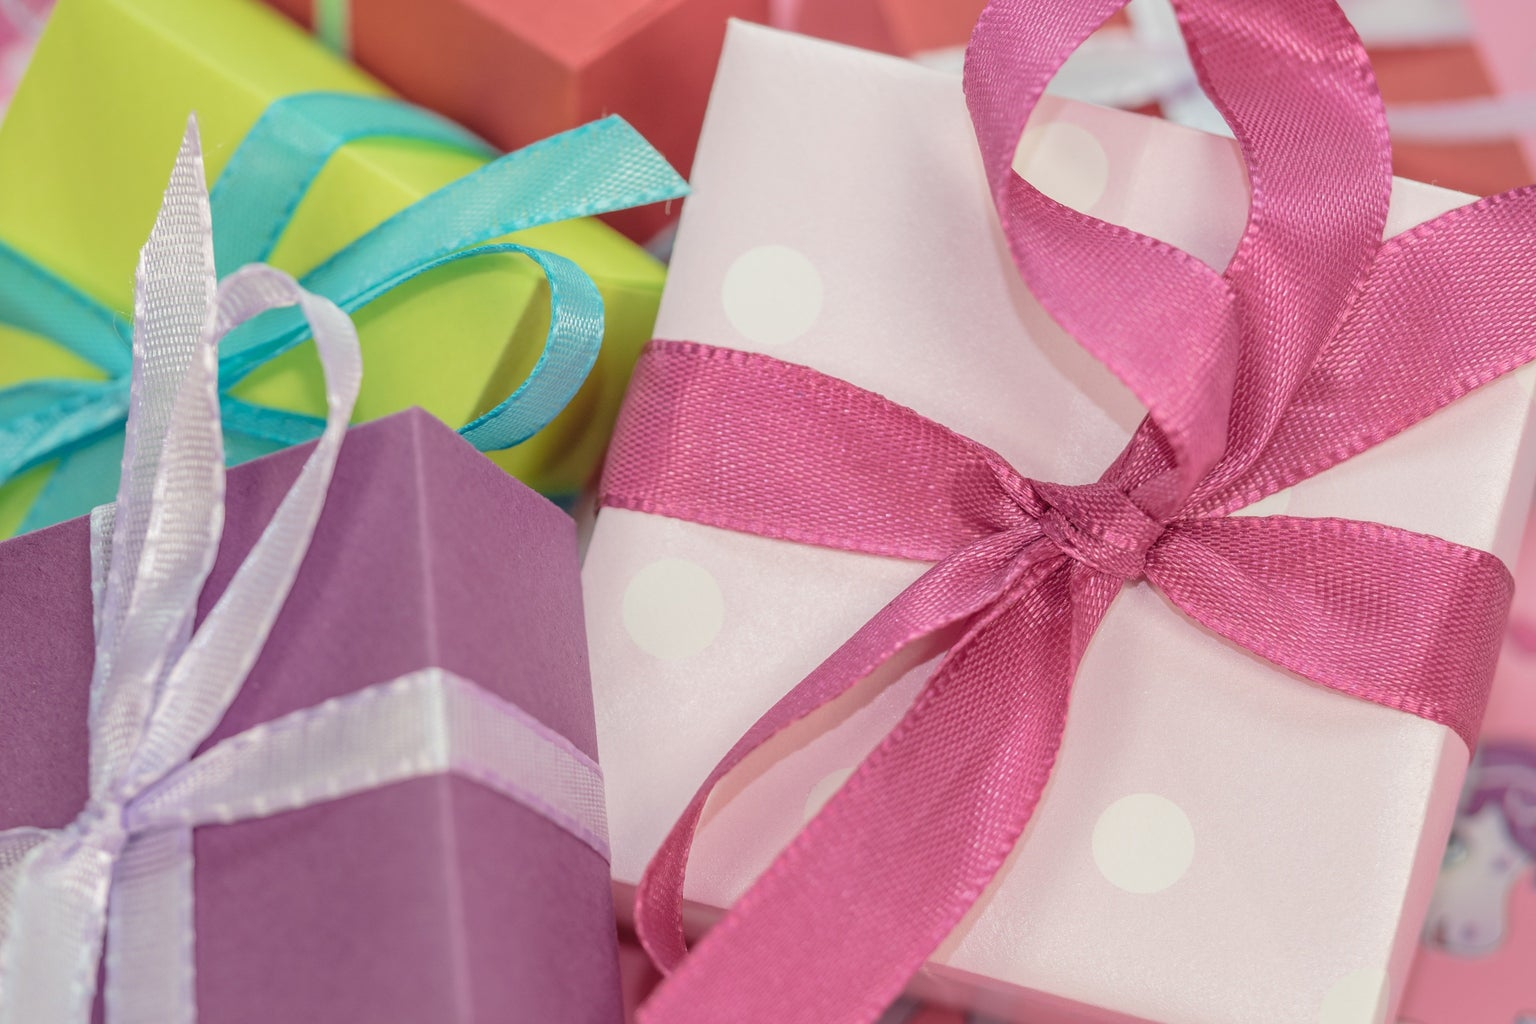 Pile of Multi Colored Gift Boxes